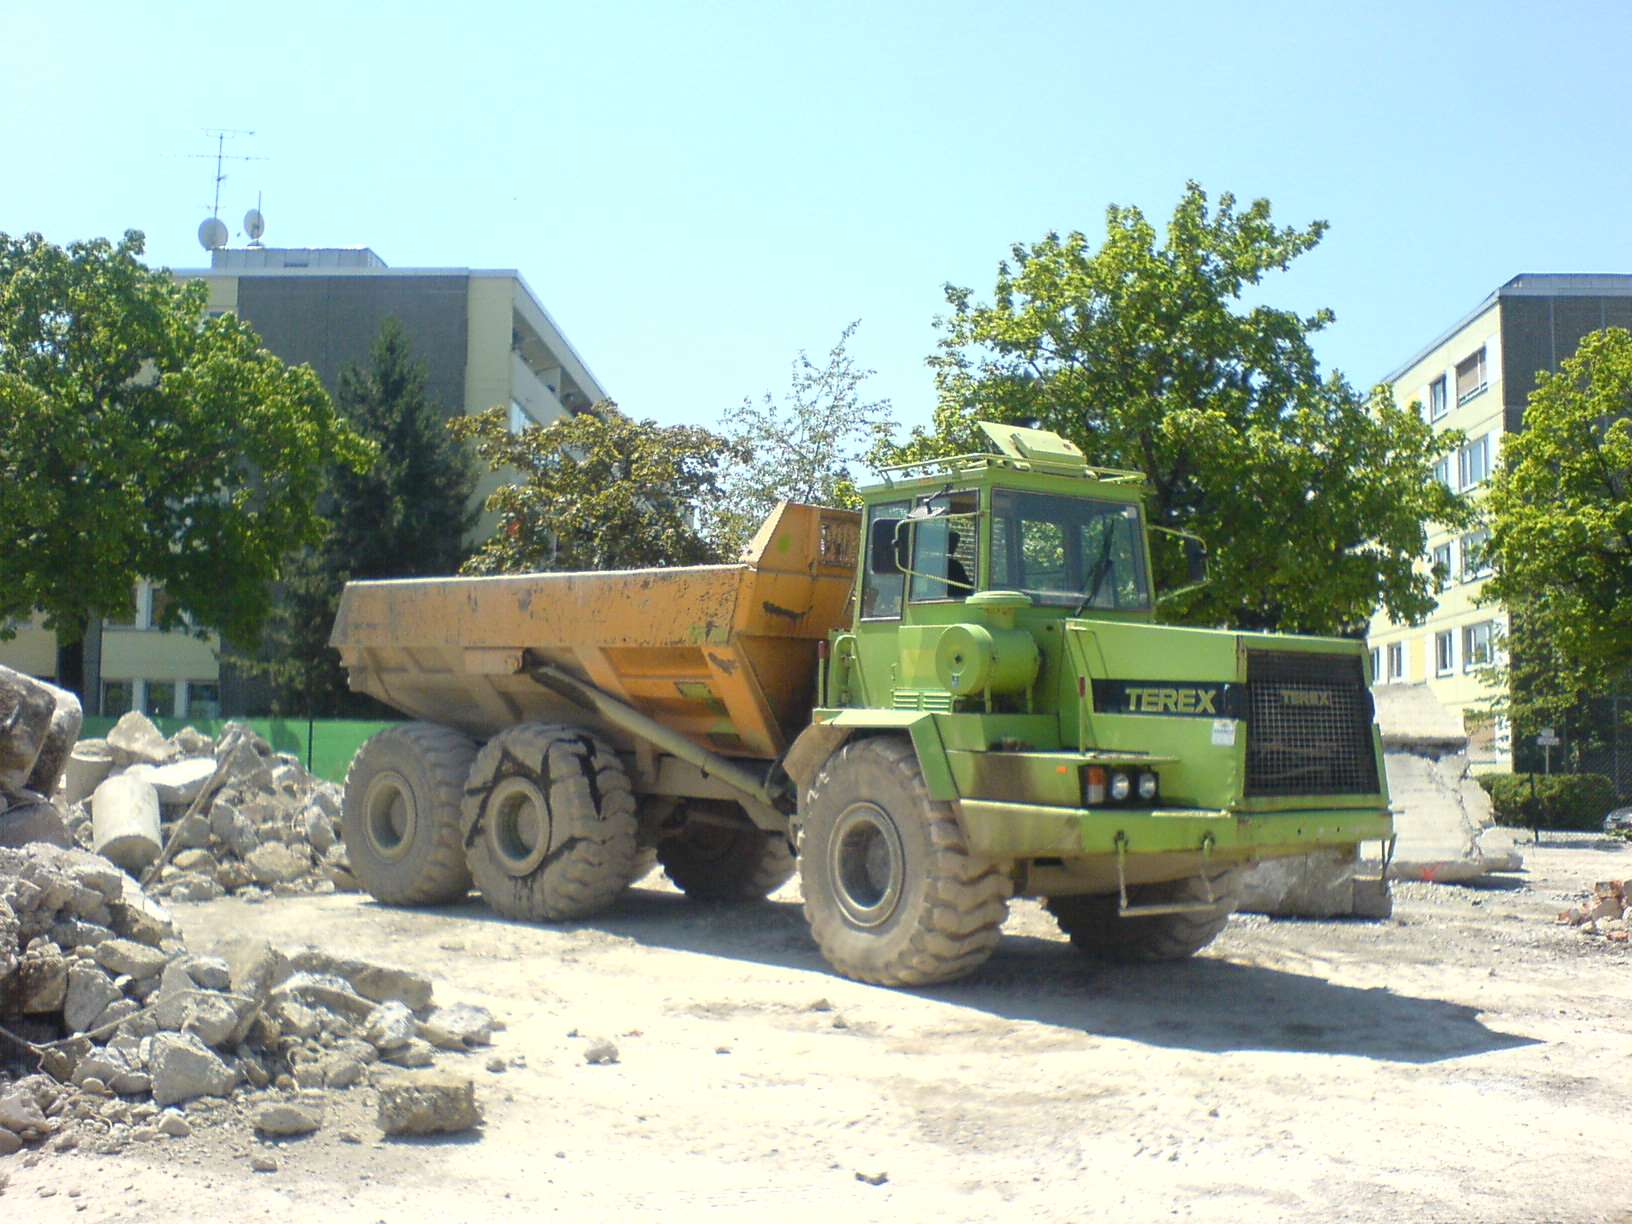 File:Terex 2566 B - total view.JPG